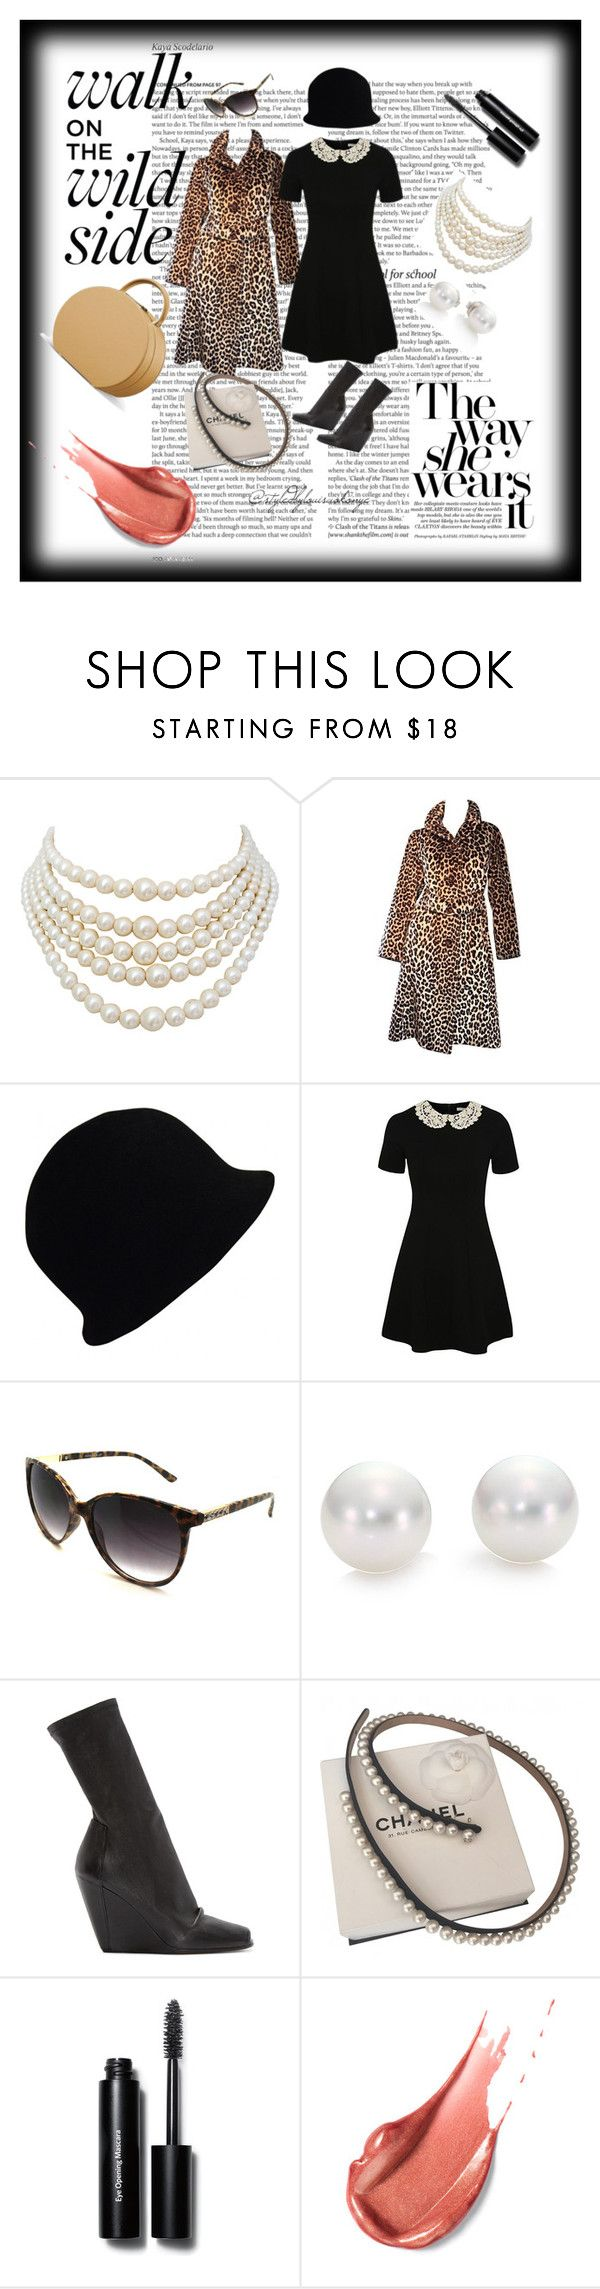 Leopard.... by louisaokonye on Polyvore featuring George, Karl Lagerfeld, Rick Owens, Christian Dior, Mikimoto, Chanel, Fantas-Eyes, Bobbi Brown Cosmetics, ASOS and dress #dress #blackdress #leopard